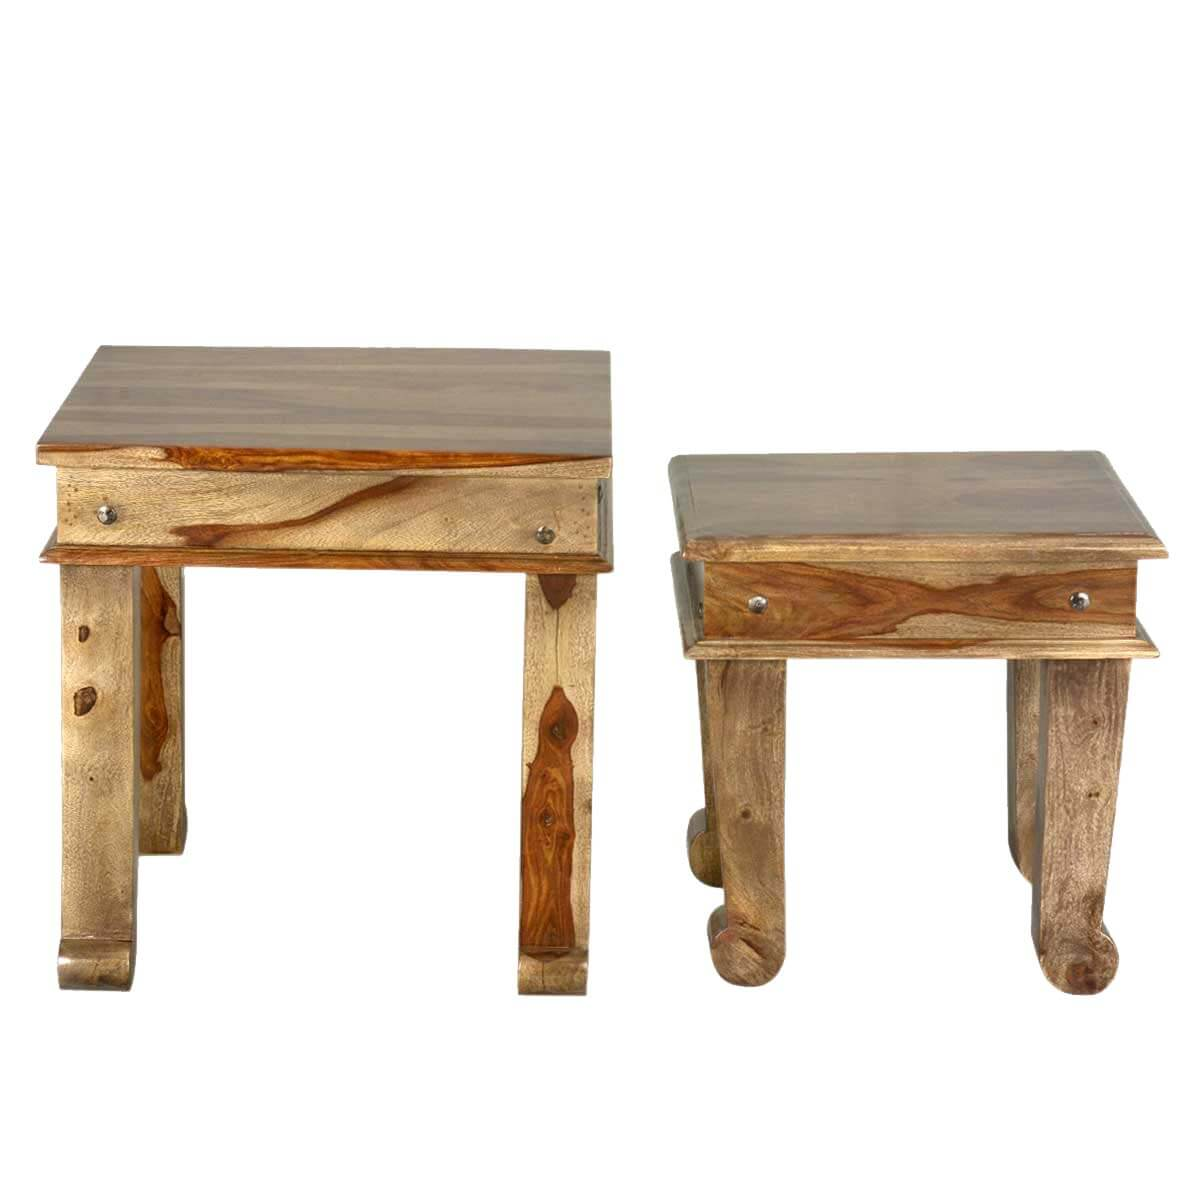 Dallas Ranch Solid Wood Club Foot Square End Table Set Of 2